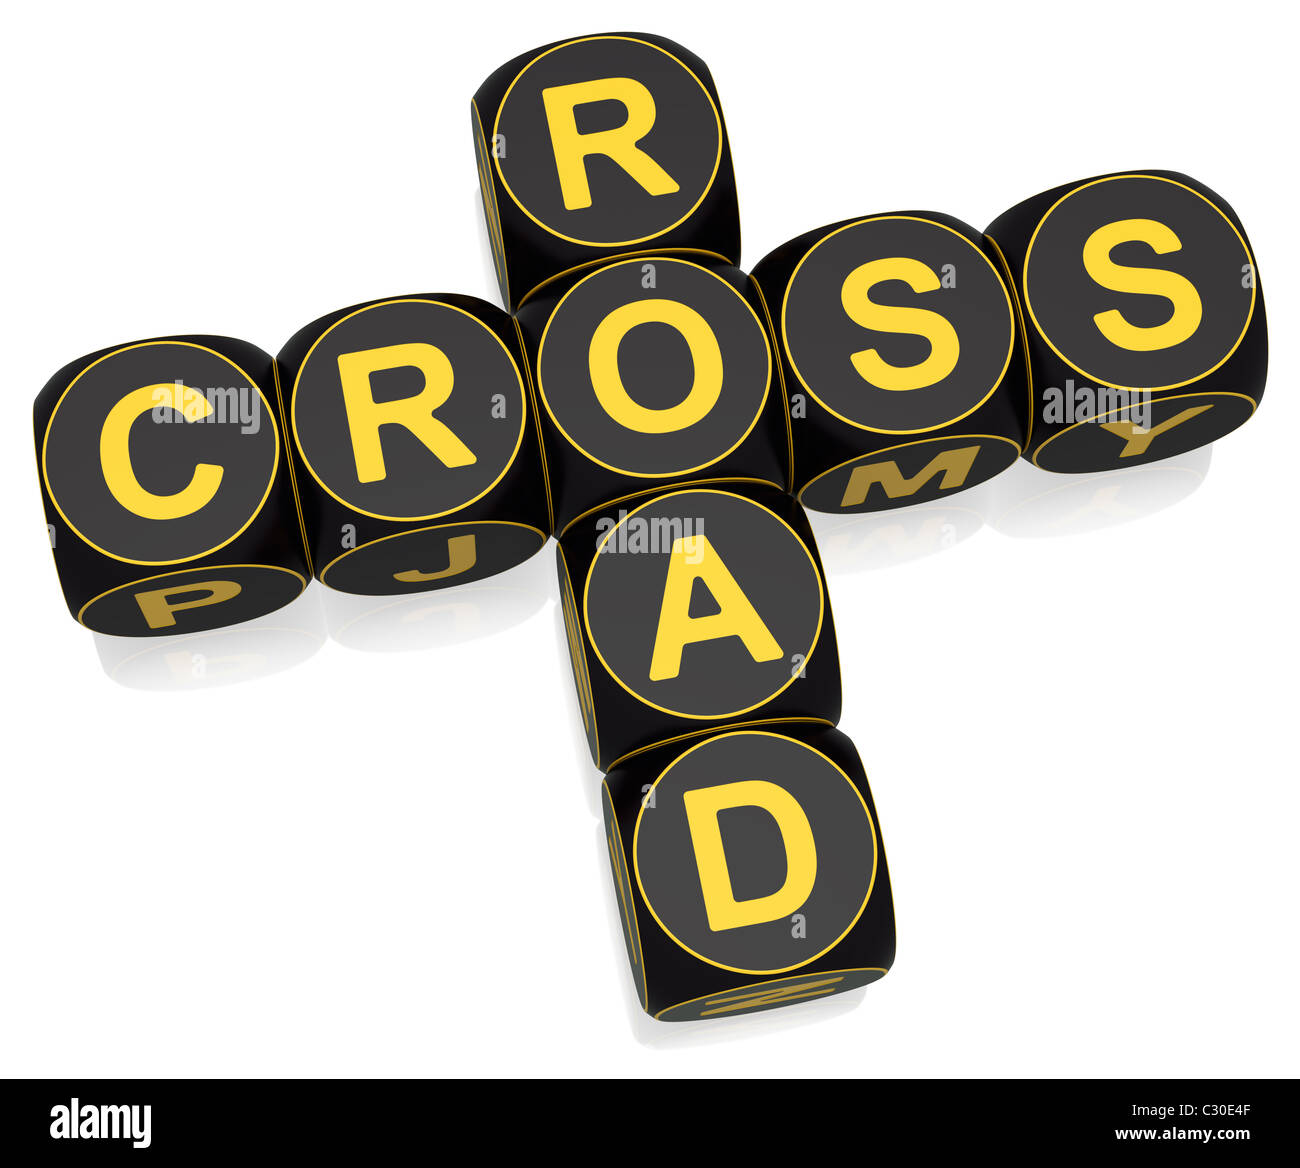 Crossroad crossword on white background - Stock Image